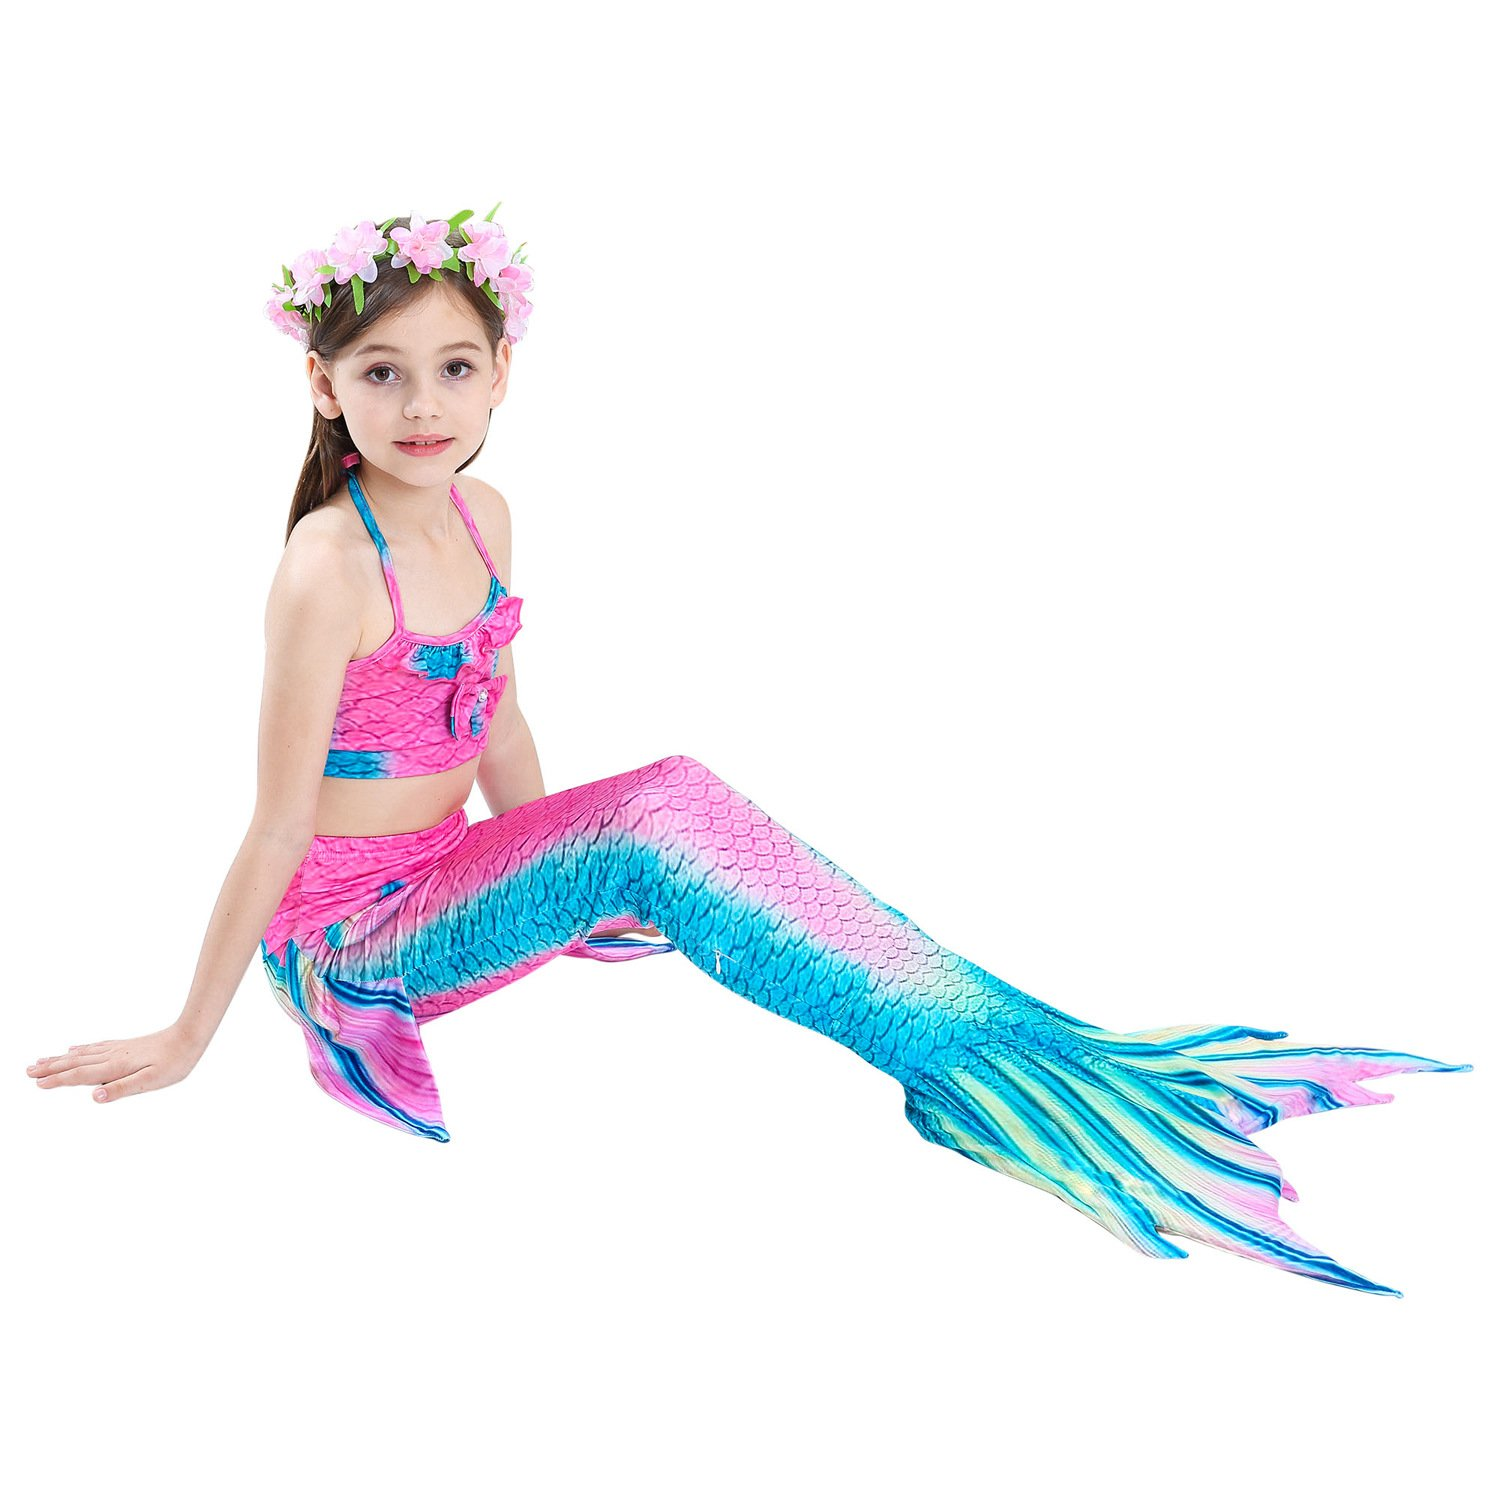 Girls Mermaid Tail for Swimming and Flower Hairband 4 Pcs Sets